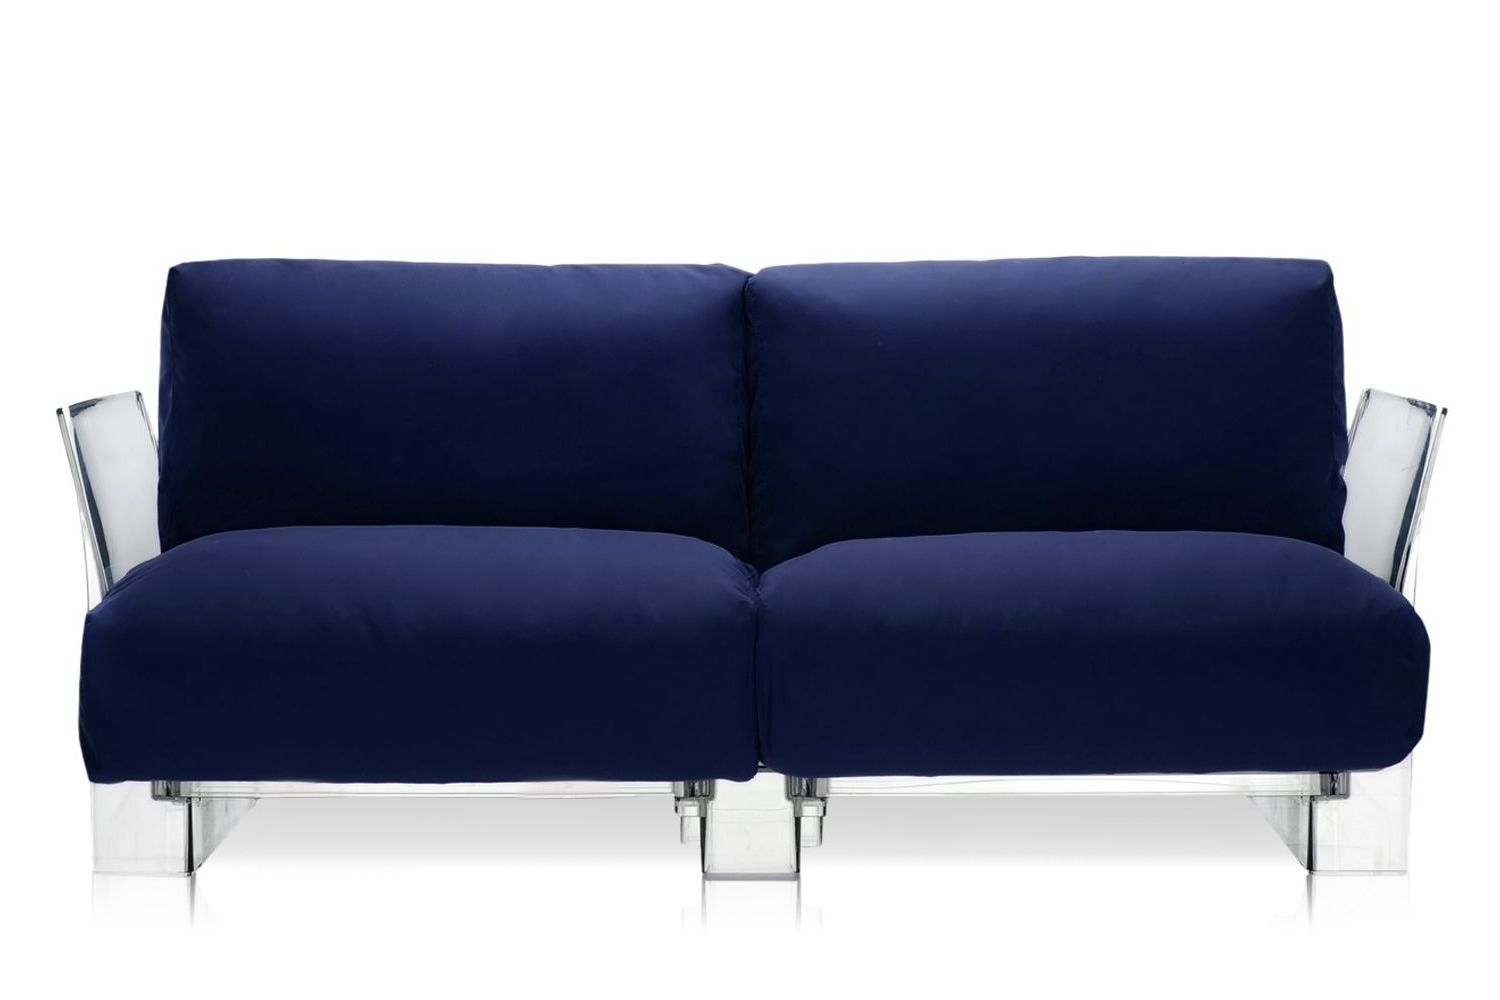 Pop outdoor sofa canap design kartell id al pour la for Canape kartell